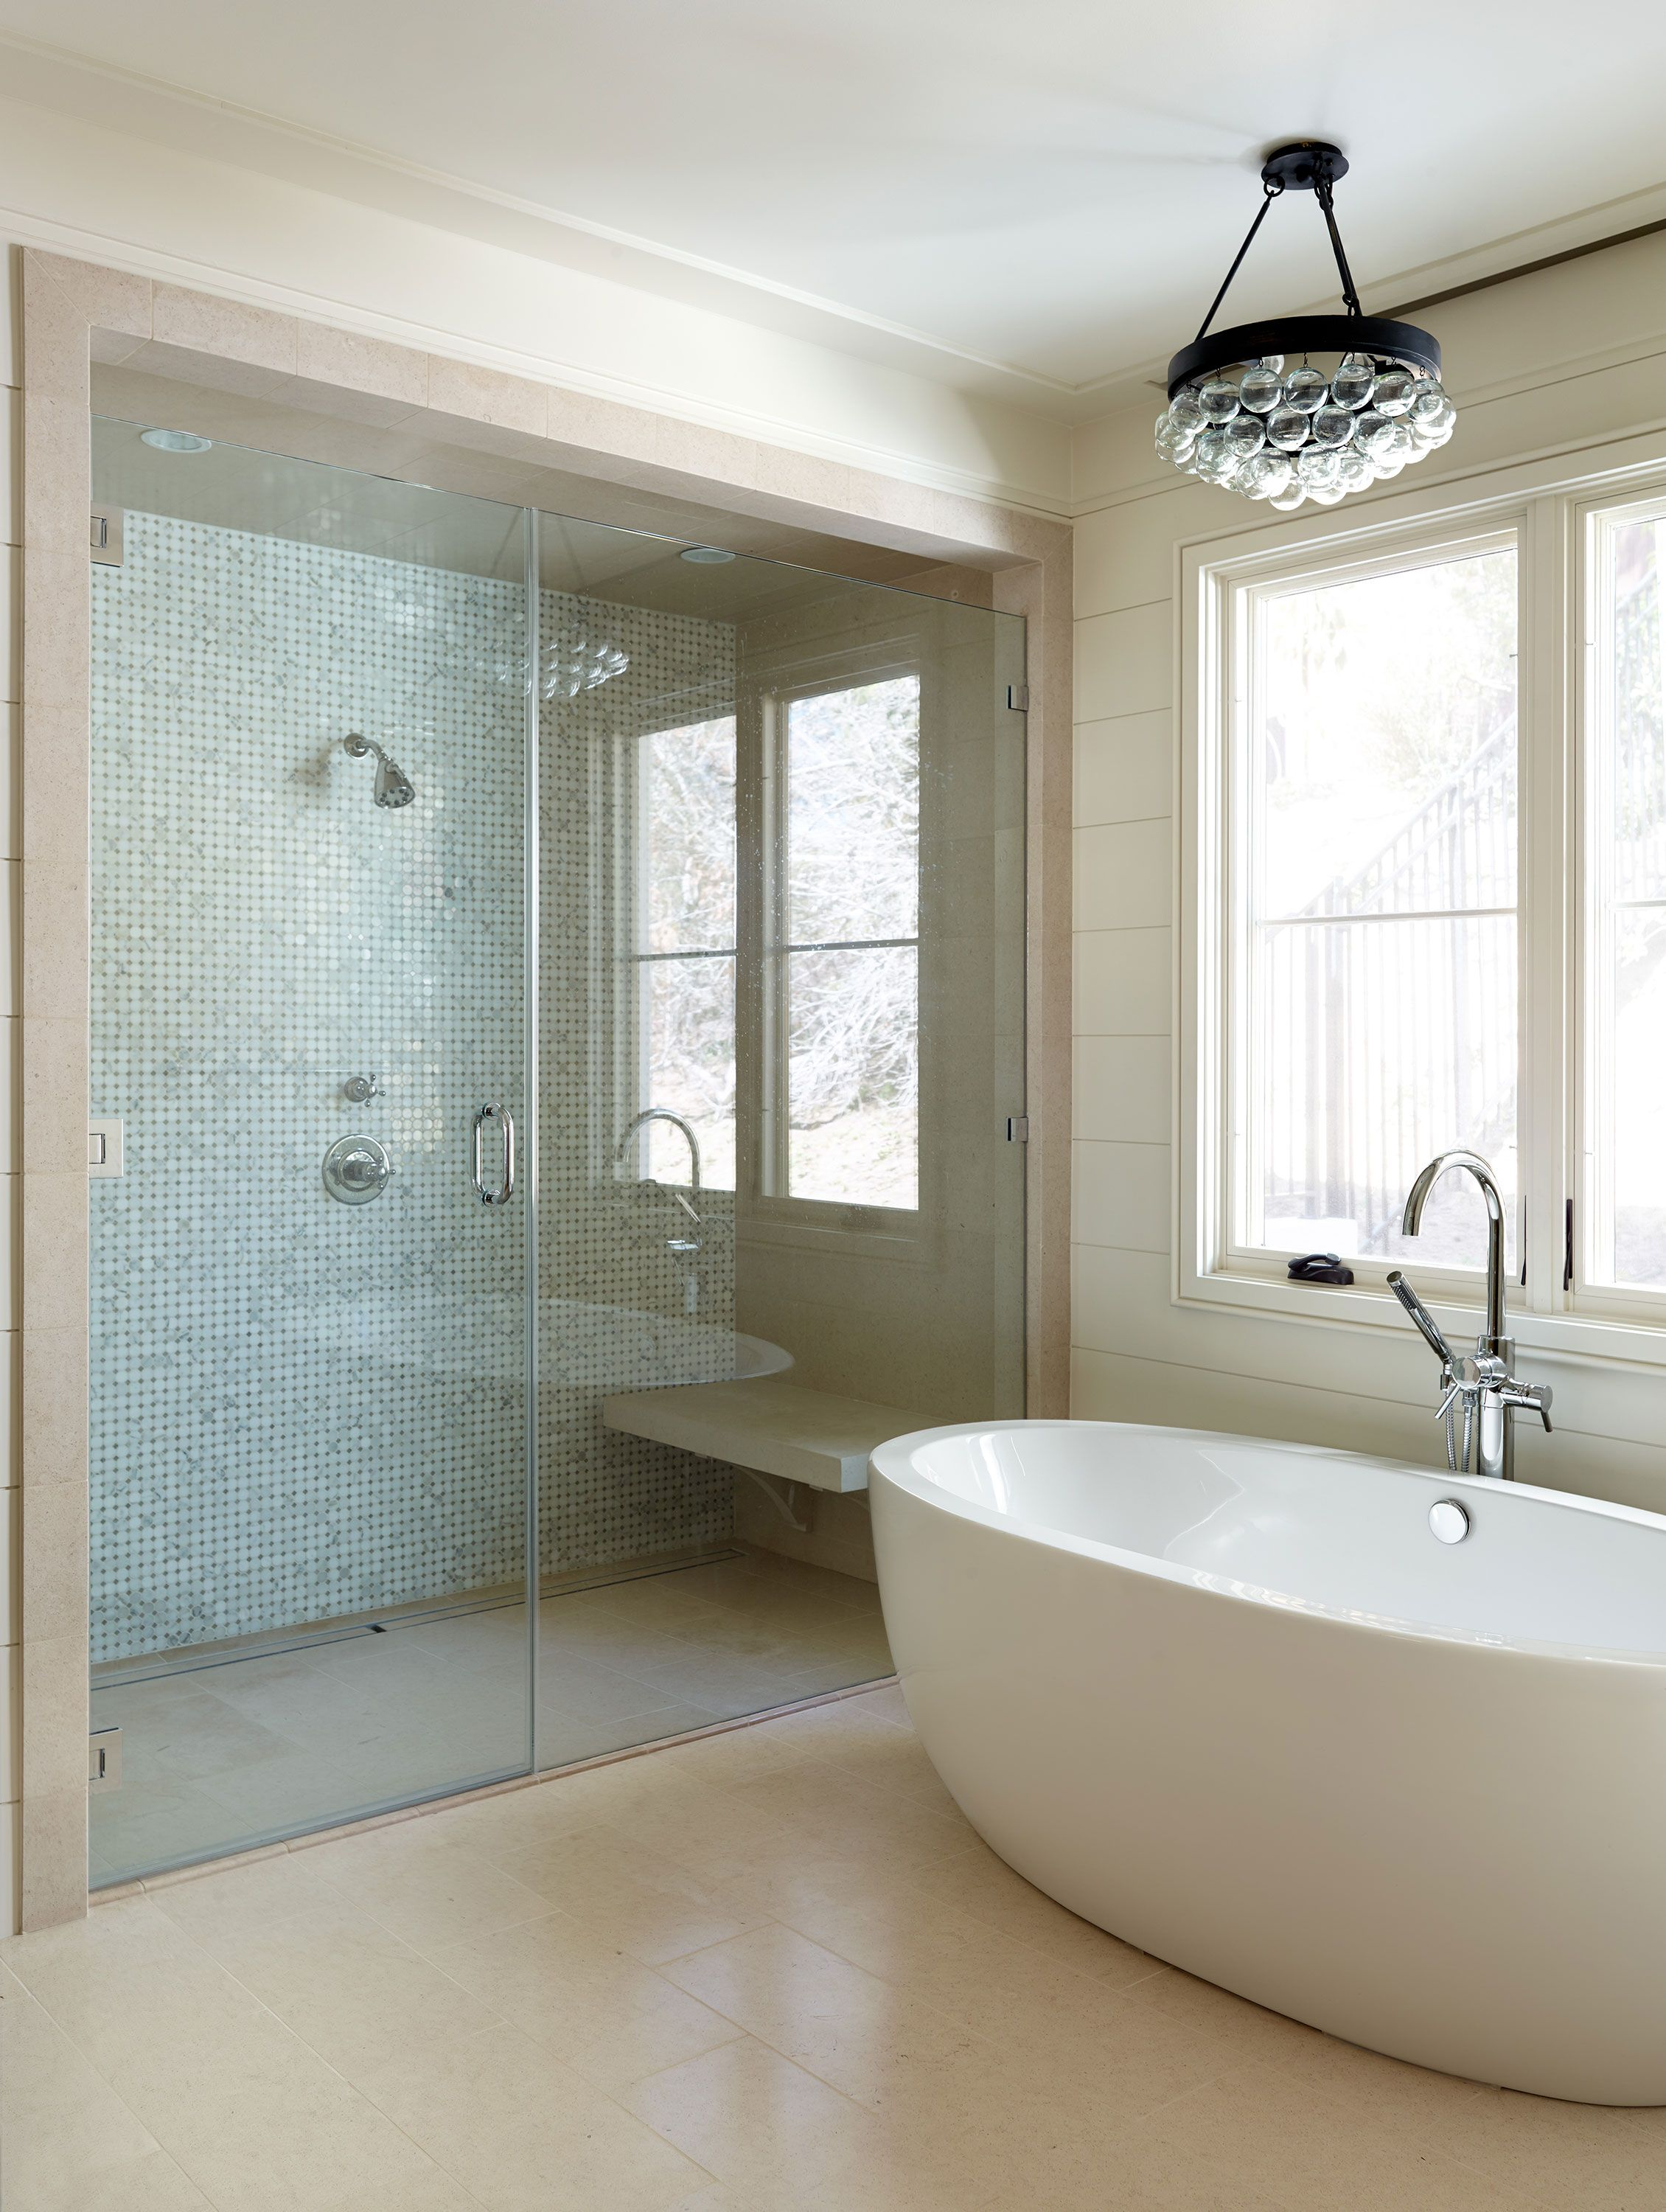 50 Best Freestanding Tubs   Pictures Of Stylish Freestanding Soaking  Bathtubs